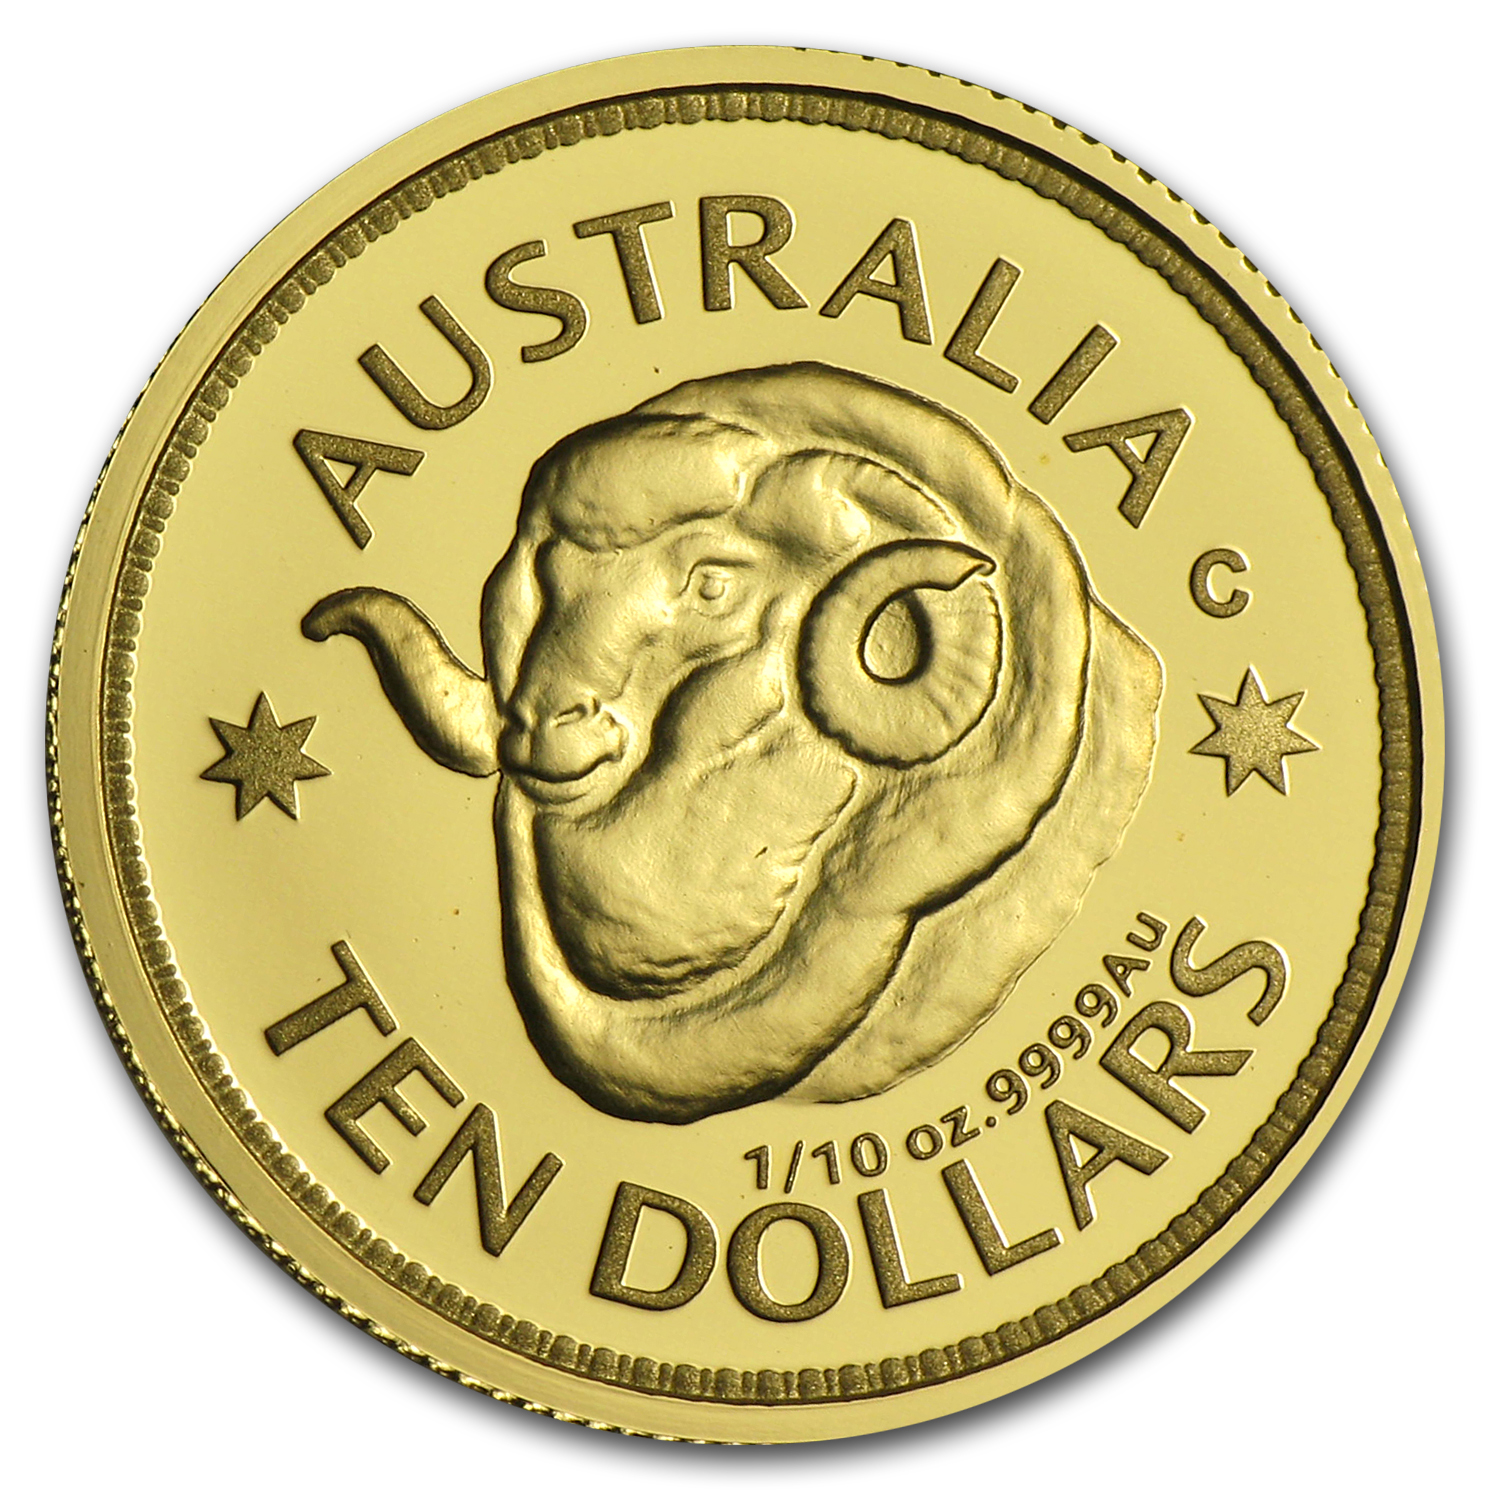 Royal Australian Mint 2011 1/10 oz Gold Proof - Ram's Head